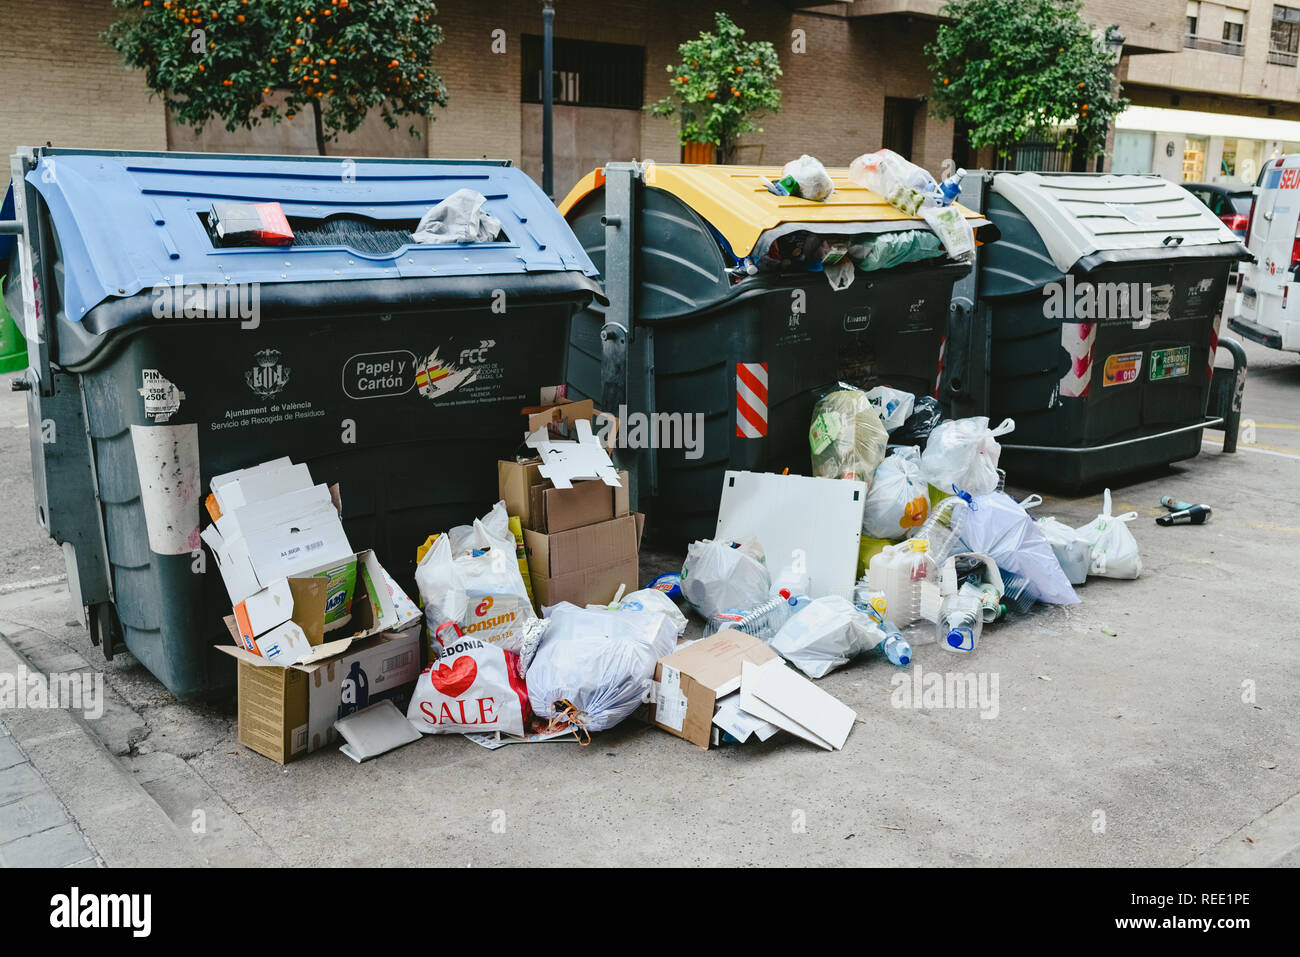 Valencia, spanish - January 14, 2019: Street garbage containers full of dirty and unhygienic garbage. - Stock Image